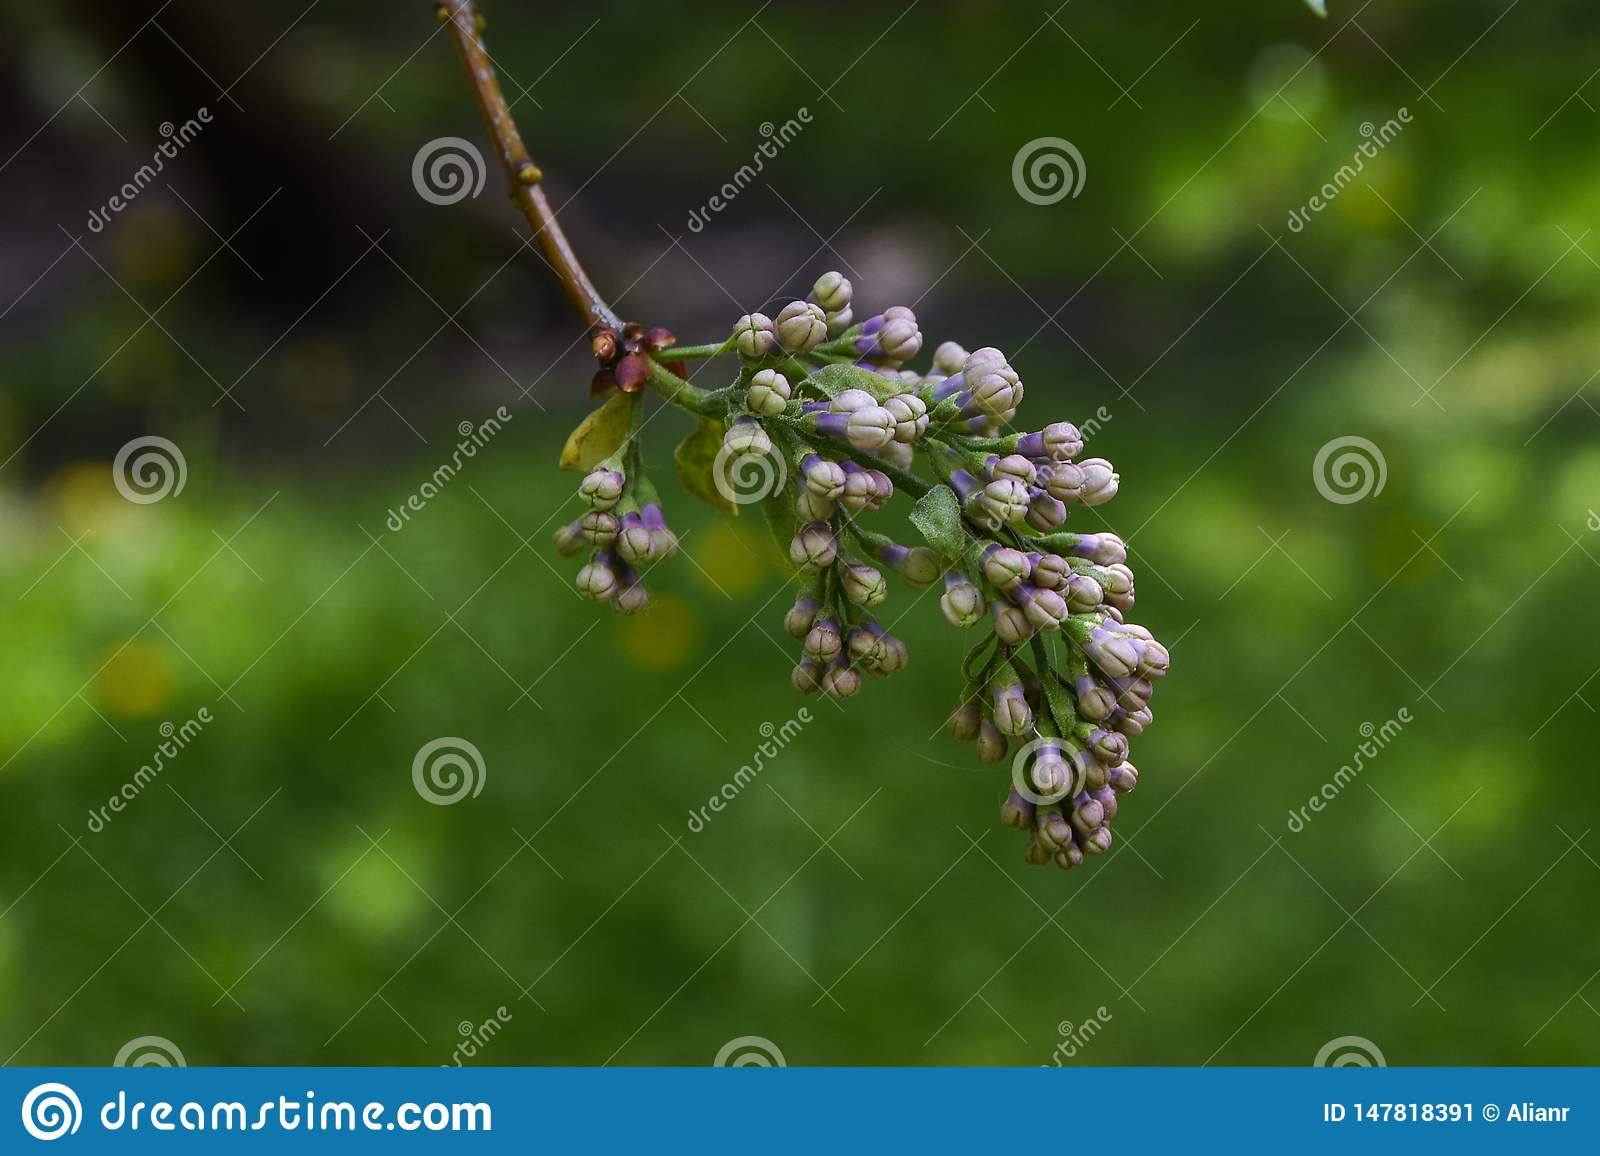 Macrophoto of lilac branch with purple buds